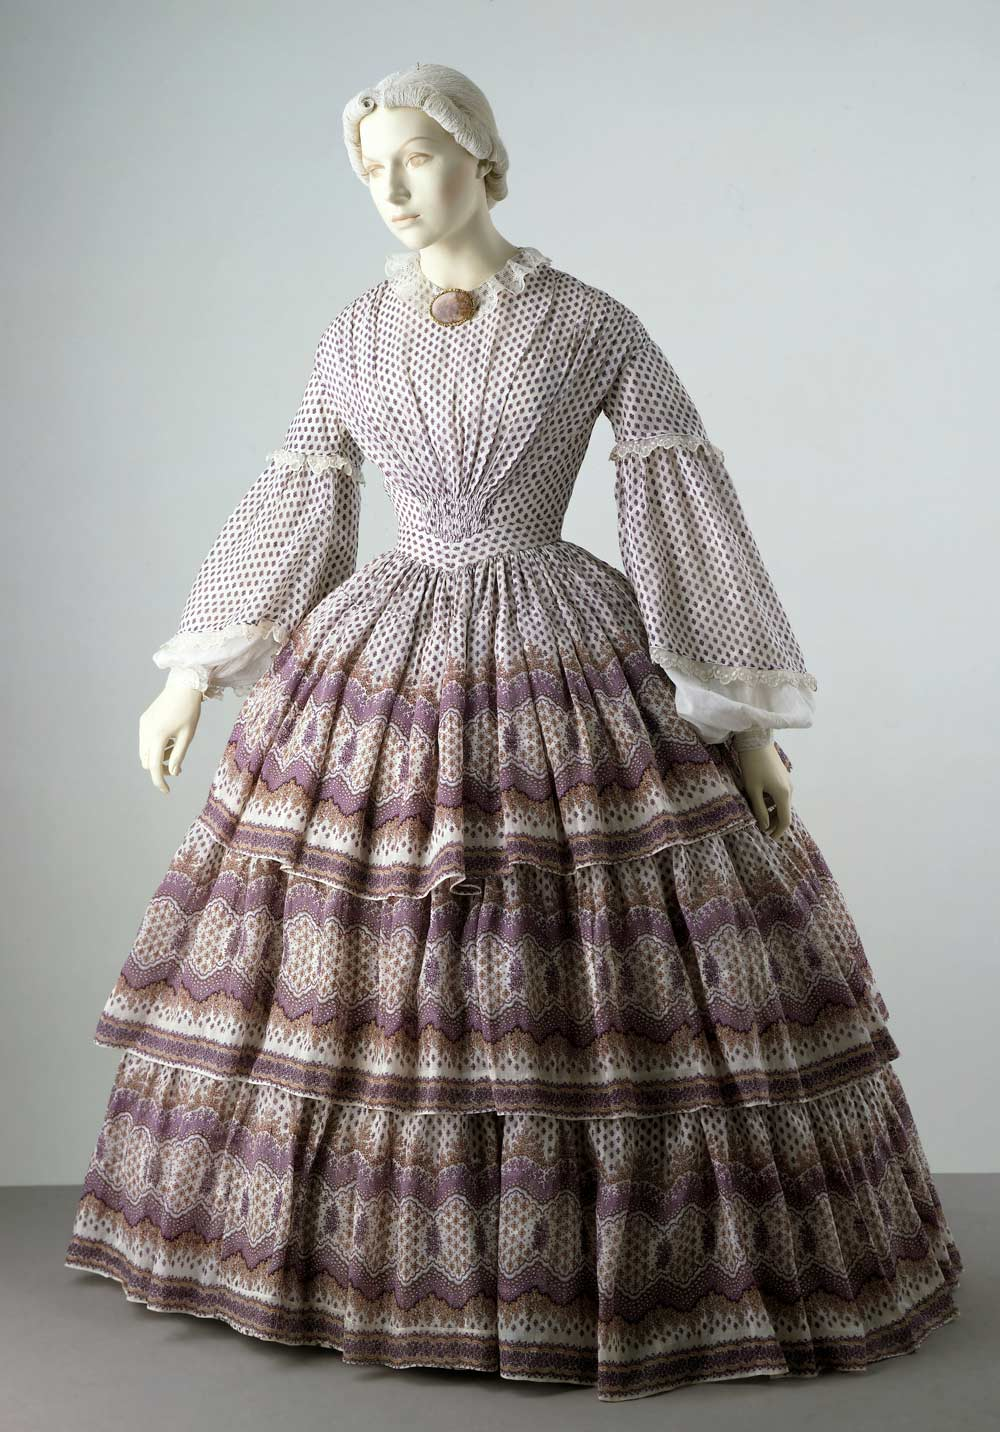 6b917e2f264c Dress with a pattern that complements the shape created by the cage  crinoline worn underneath it. Museum no. T.702-1913. © Victoria & Albert  Museum, London